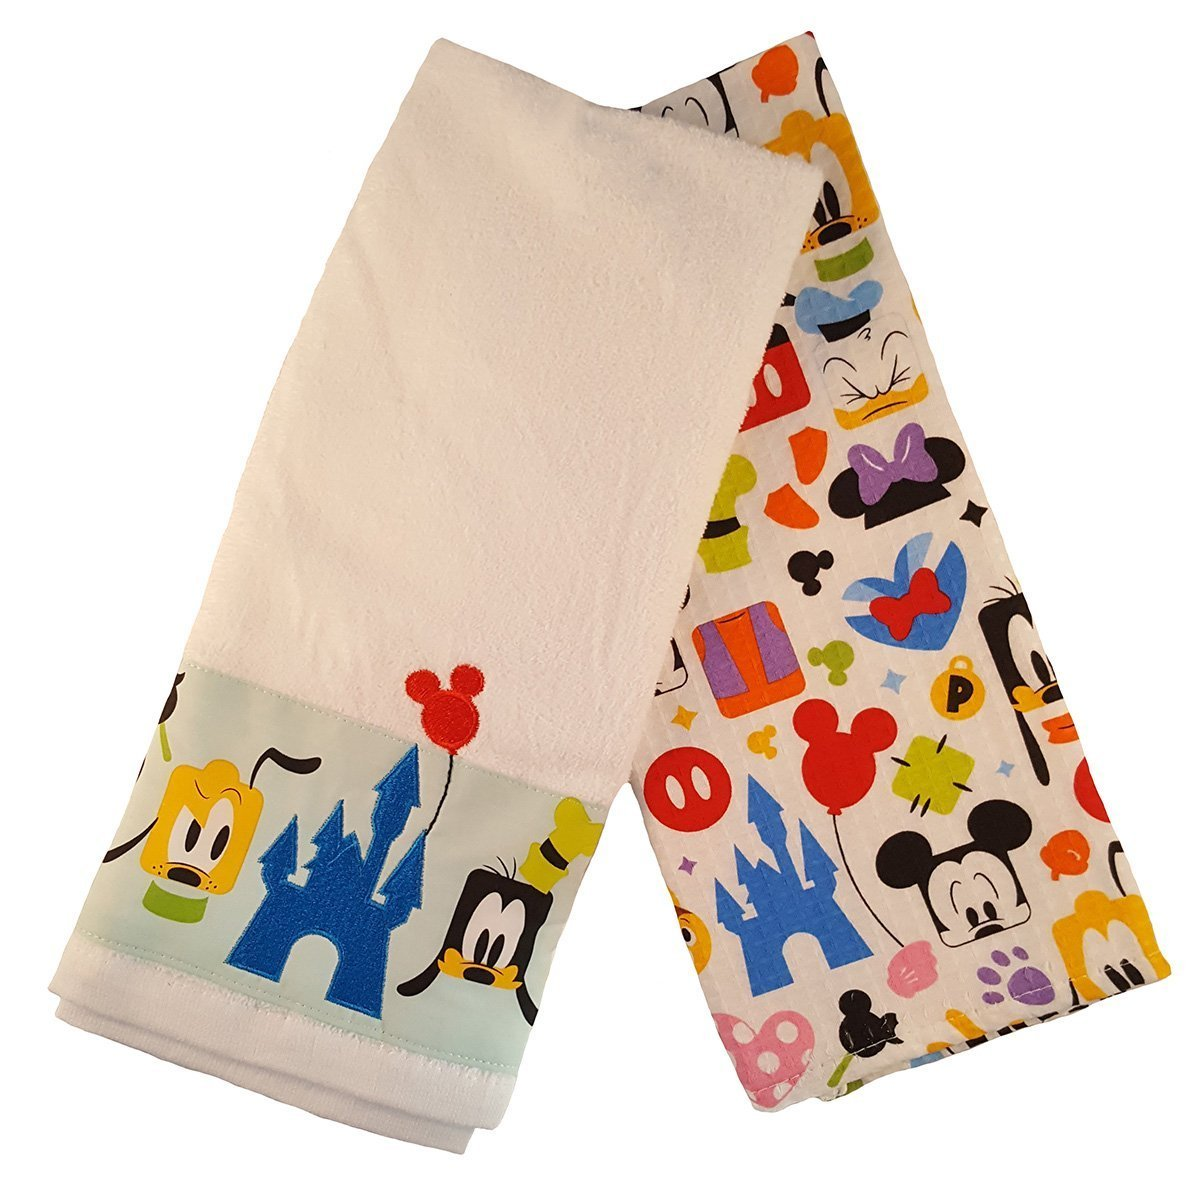 Disney Parks Mickey Mouse and Friends Colorful Kitchen Towel Set of 2 NEW by Disney